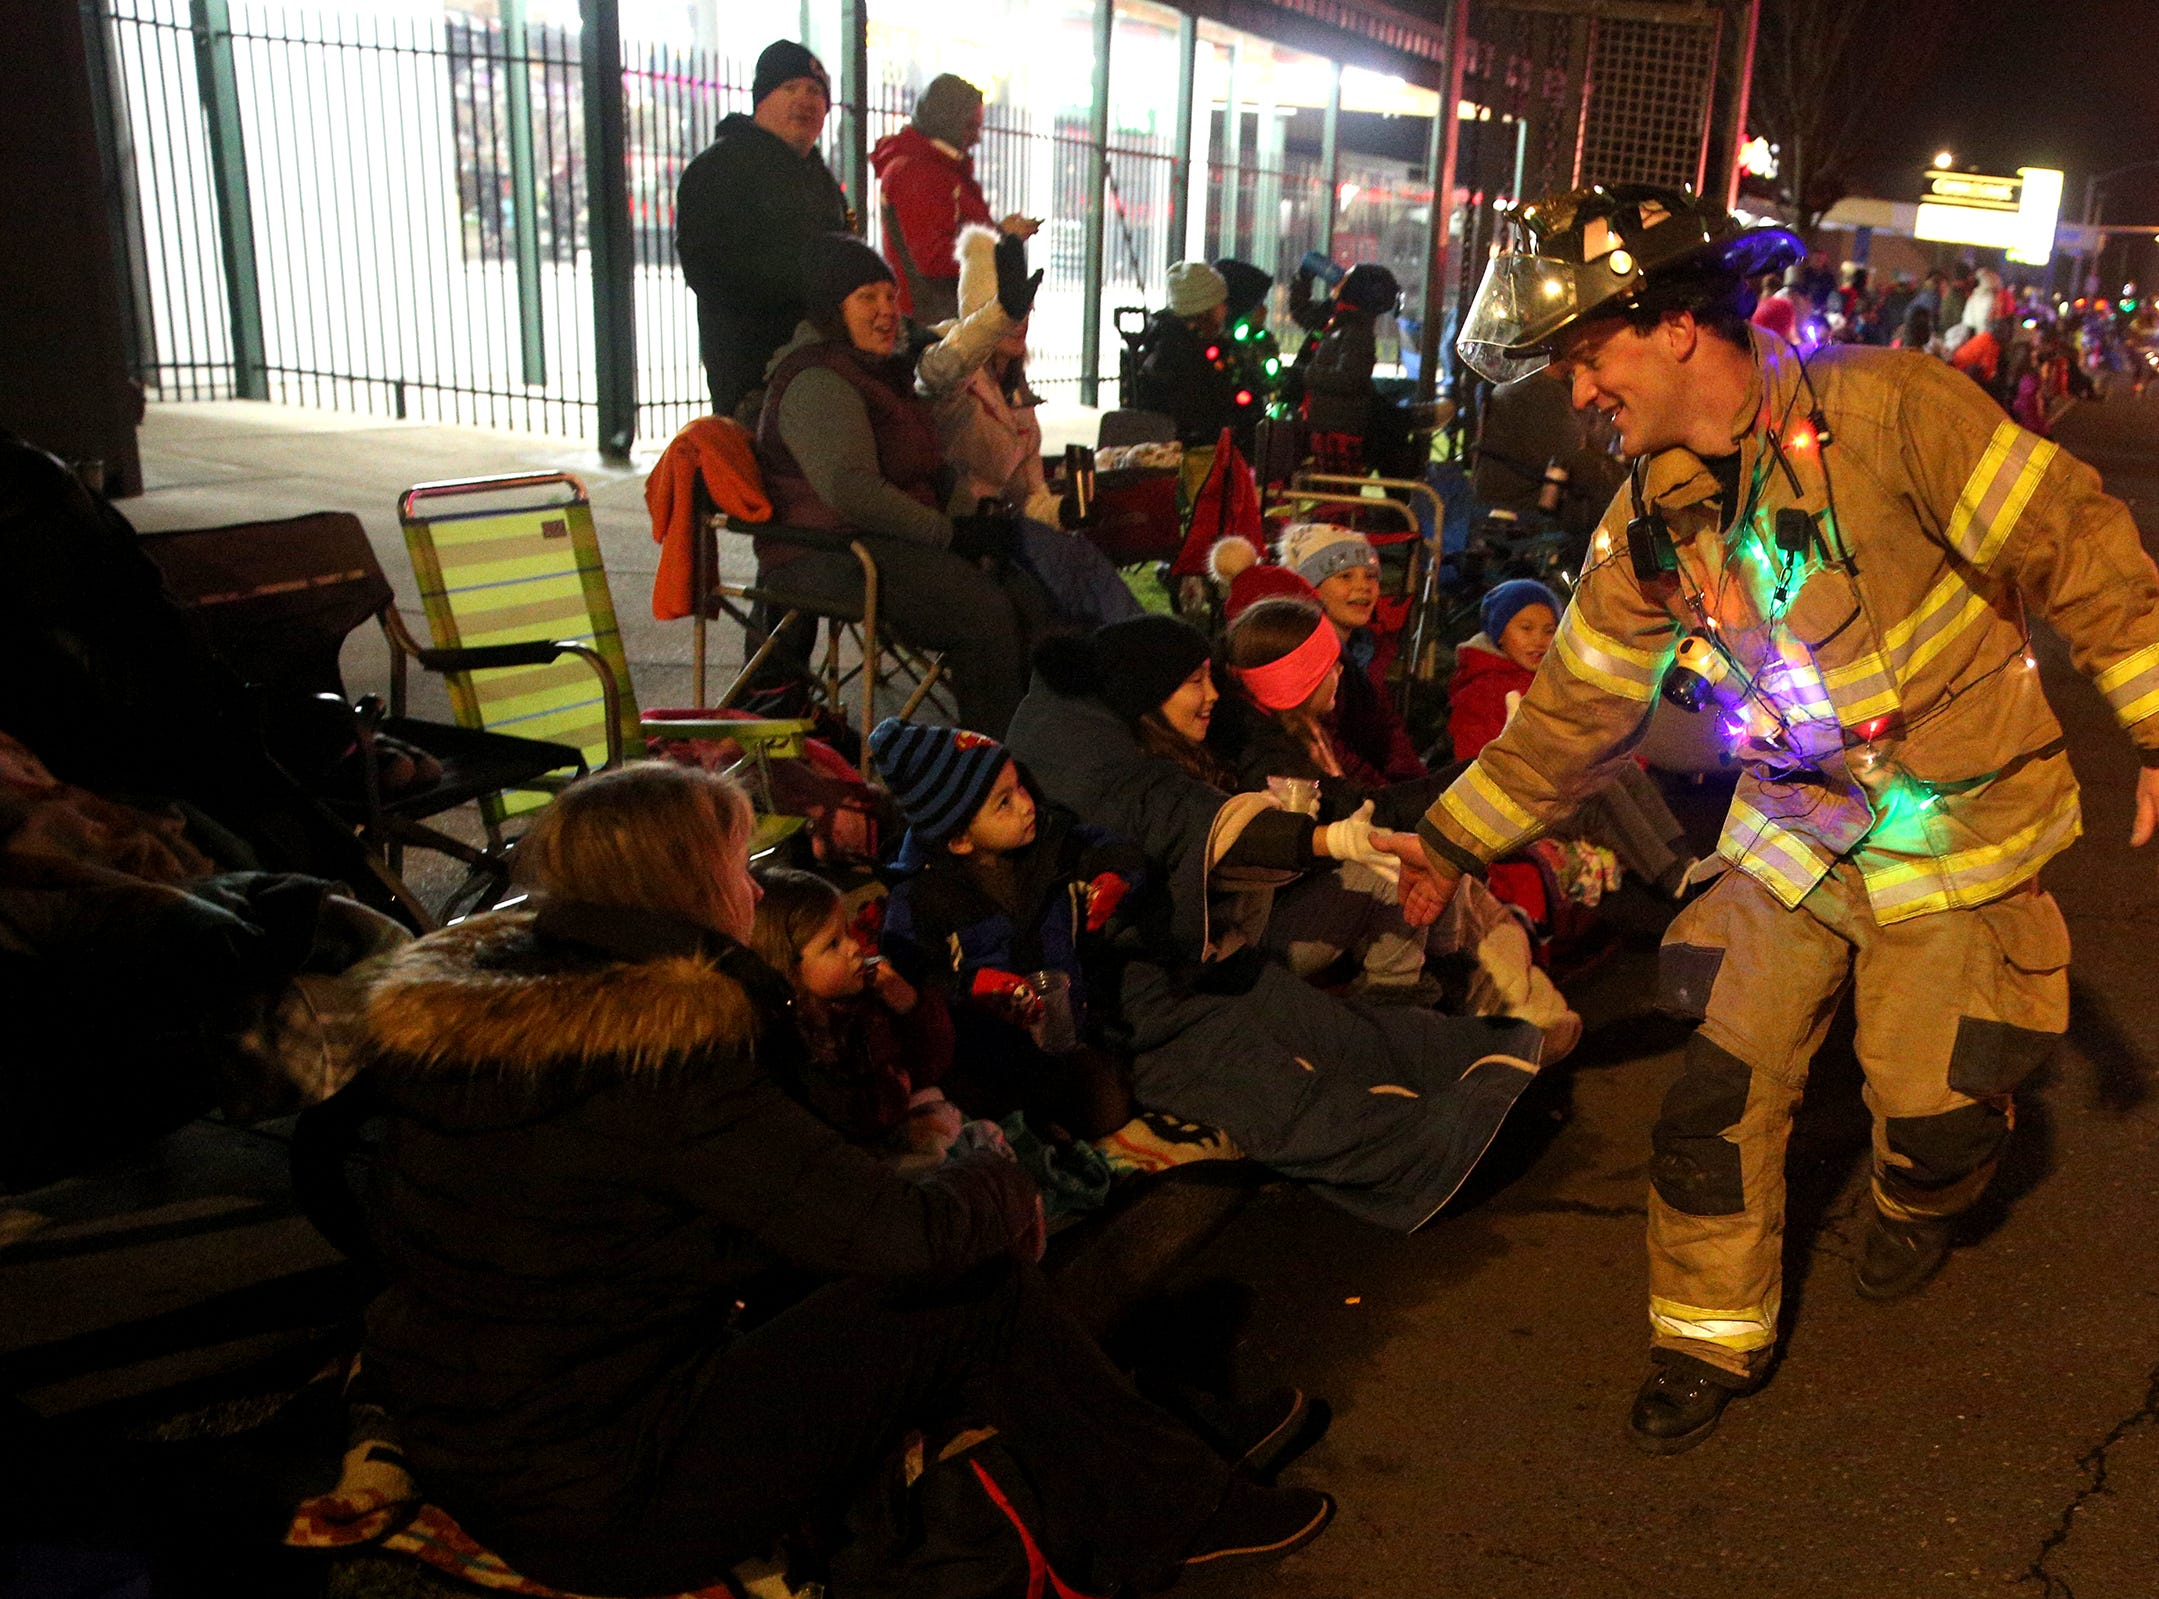 A Salem Fire Department firefighter high fives parade attendees during the Keizer Holiday Lights Parade in Keizer on Saturday, Dec. 8, 2018.